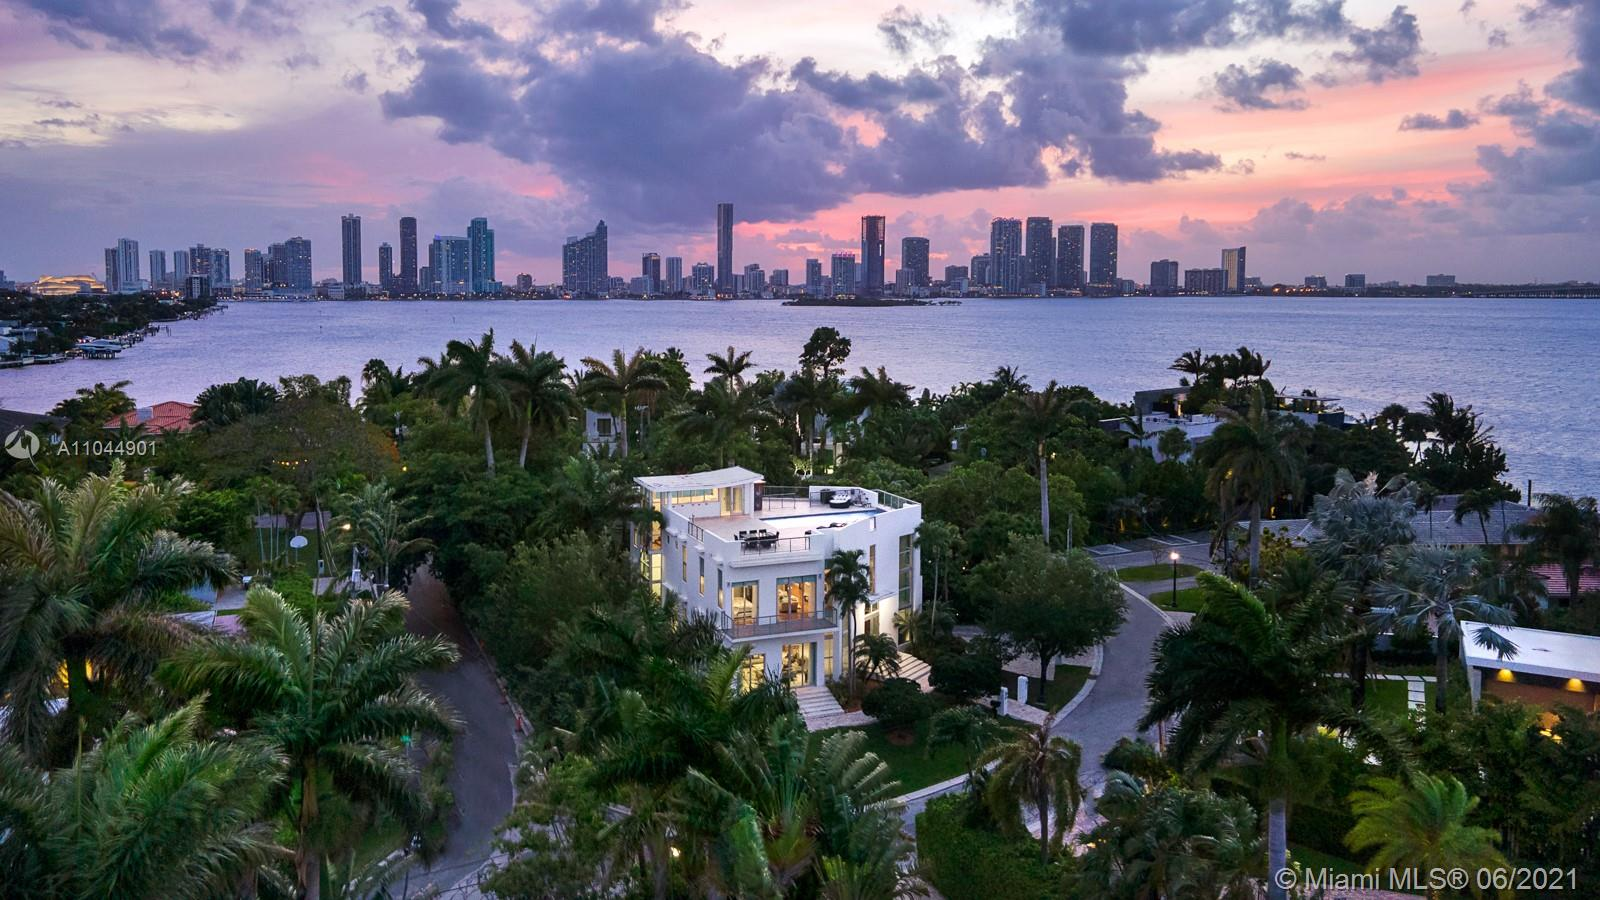 One of a kind contemporary new luxurious home w/ gorgeous 1,900 sq ft rooftop pool terrace. Sitting on a 7,500 sq ft corner lot, boasting a 15 x 30 negative edge swimming pool w/ breathtaking 360-degree panoramic views of Biscayne Bay (incl. gas, water, elec. outlets for bar/bbq/jacuzzi). Welcoming you with a 10'+ ceiling height w/ double-height entryway, elevator to all 3 floors, smart touch (color panel) lighting system, tankless gas w/h, high-end plumbing and elec. equip. Deluxe master bath: spa, sauna, bidet, all bedrooms with en-suite baths, equipped w/ Kohler infinity soaker tub, etc. Spacious playroom room under the pool is fun for kids.